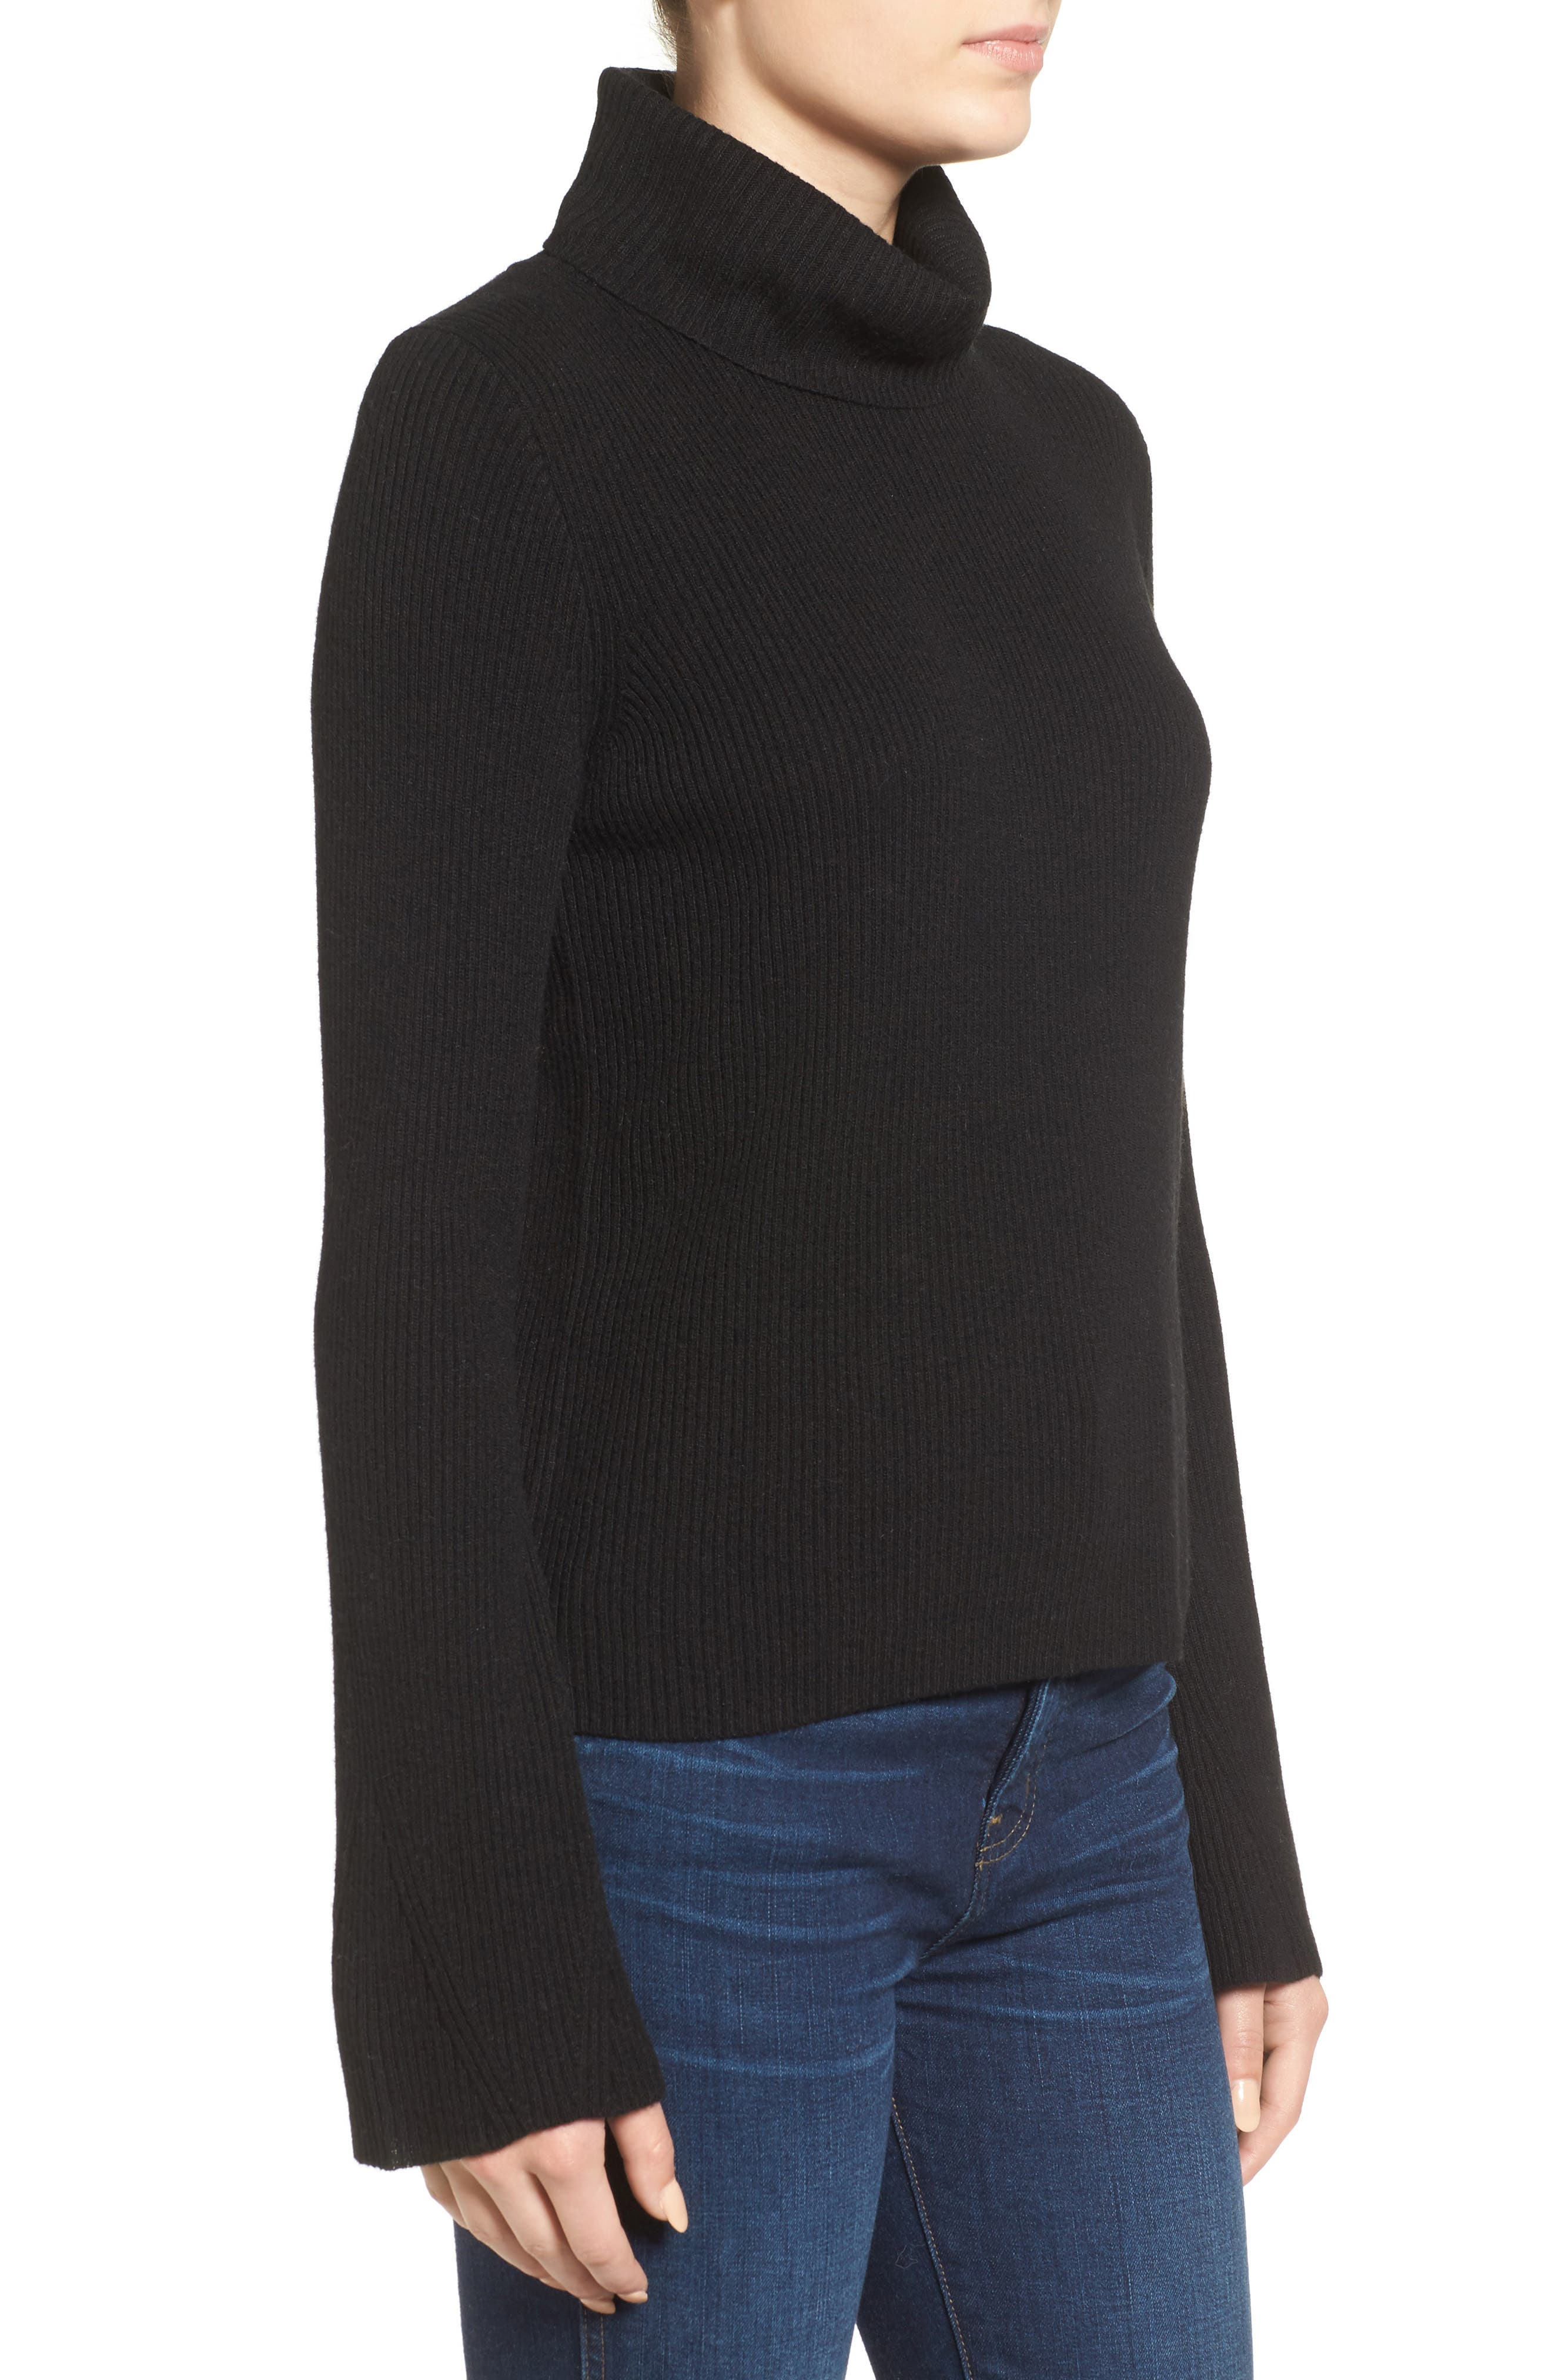 MADEWELL,                             Turtleneck Sweater,                             Alternate thumbnail 3, color,                             001